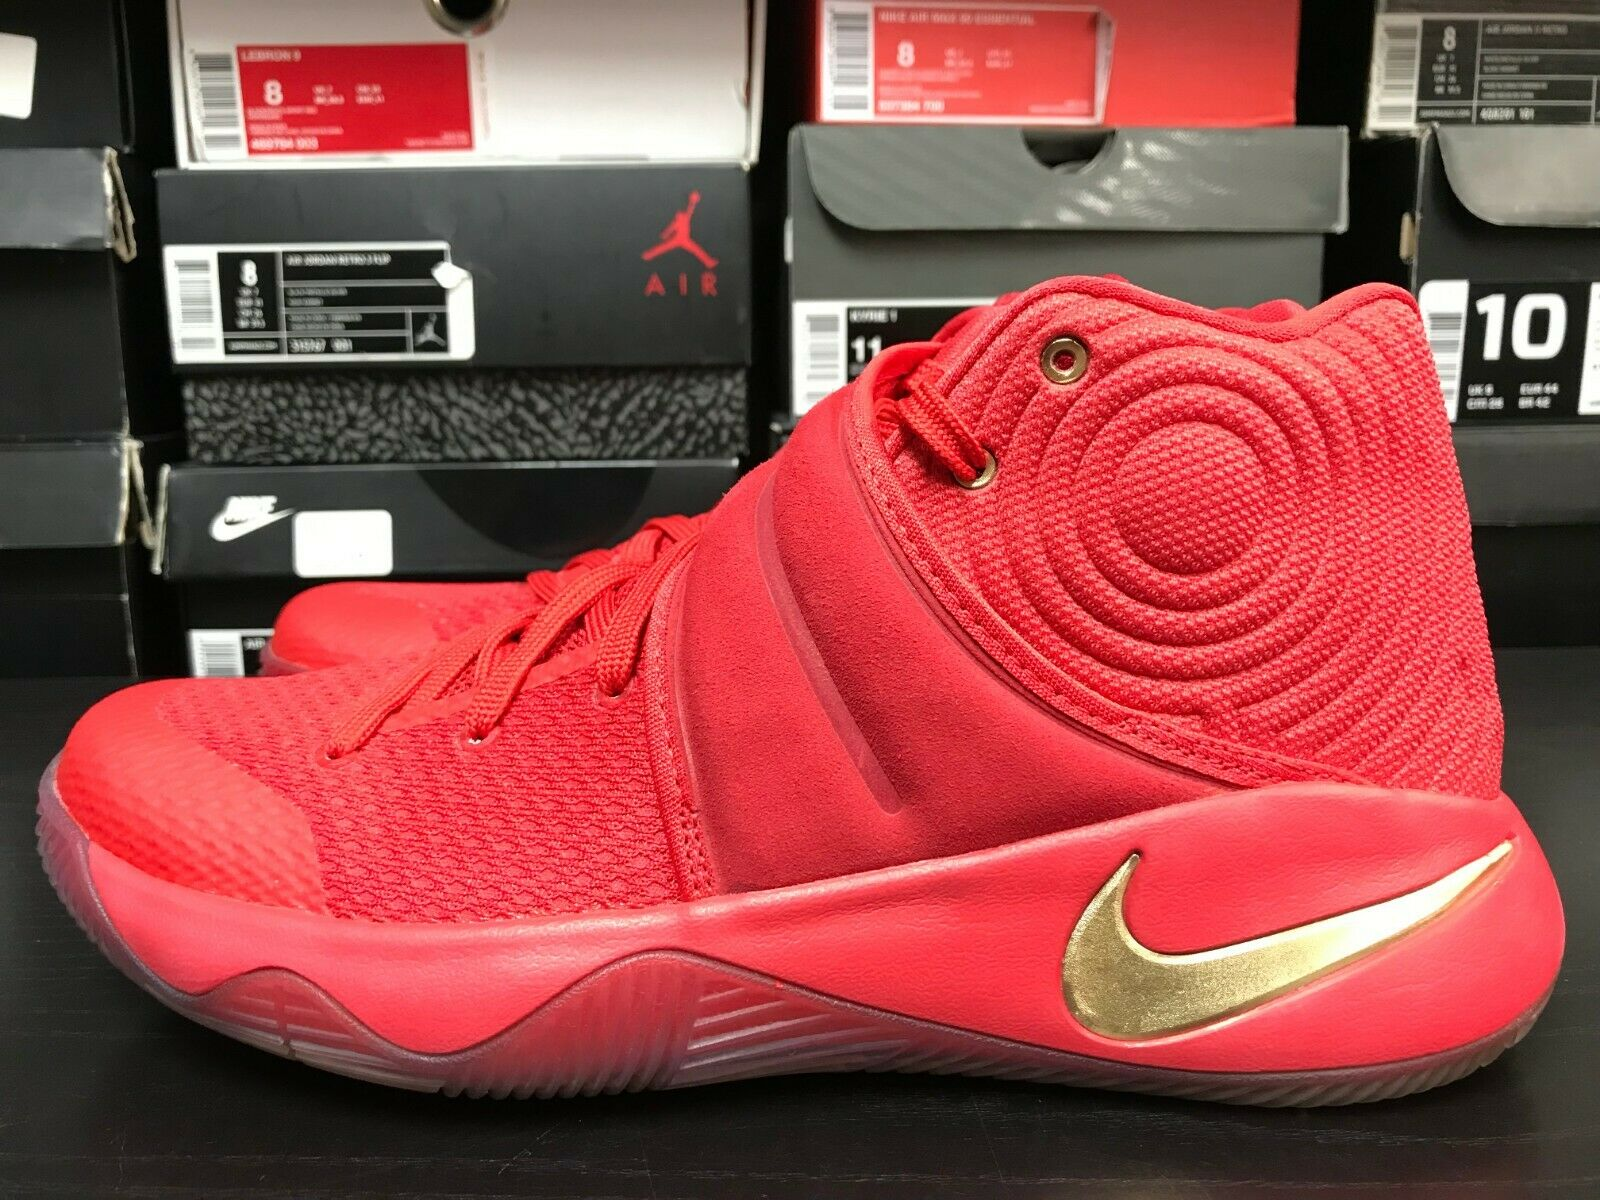 a4329cfd7f Nike Kyrie 2 LMTD gold Medal Size 9 Red gold USA. Nike Air Max Kantara  908982-001 Black White Silver Men's Running shoes NEW